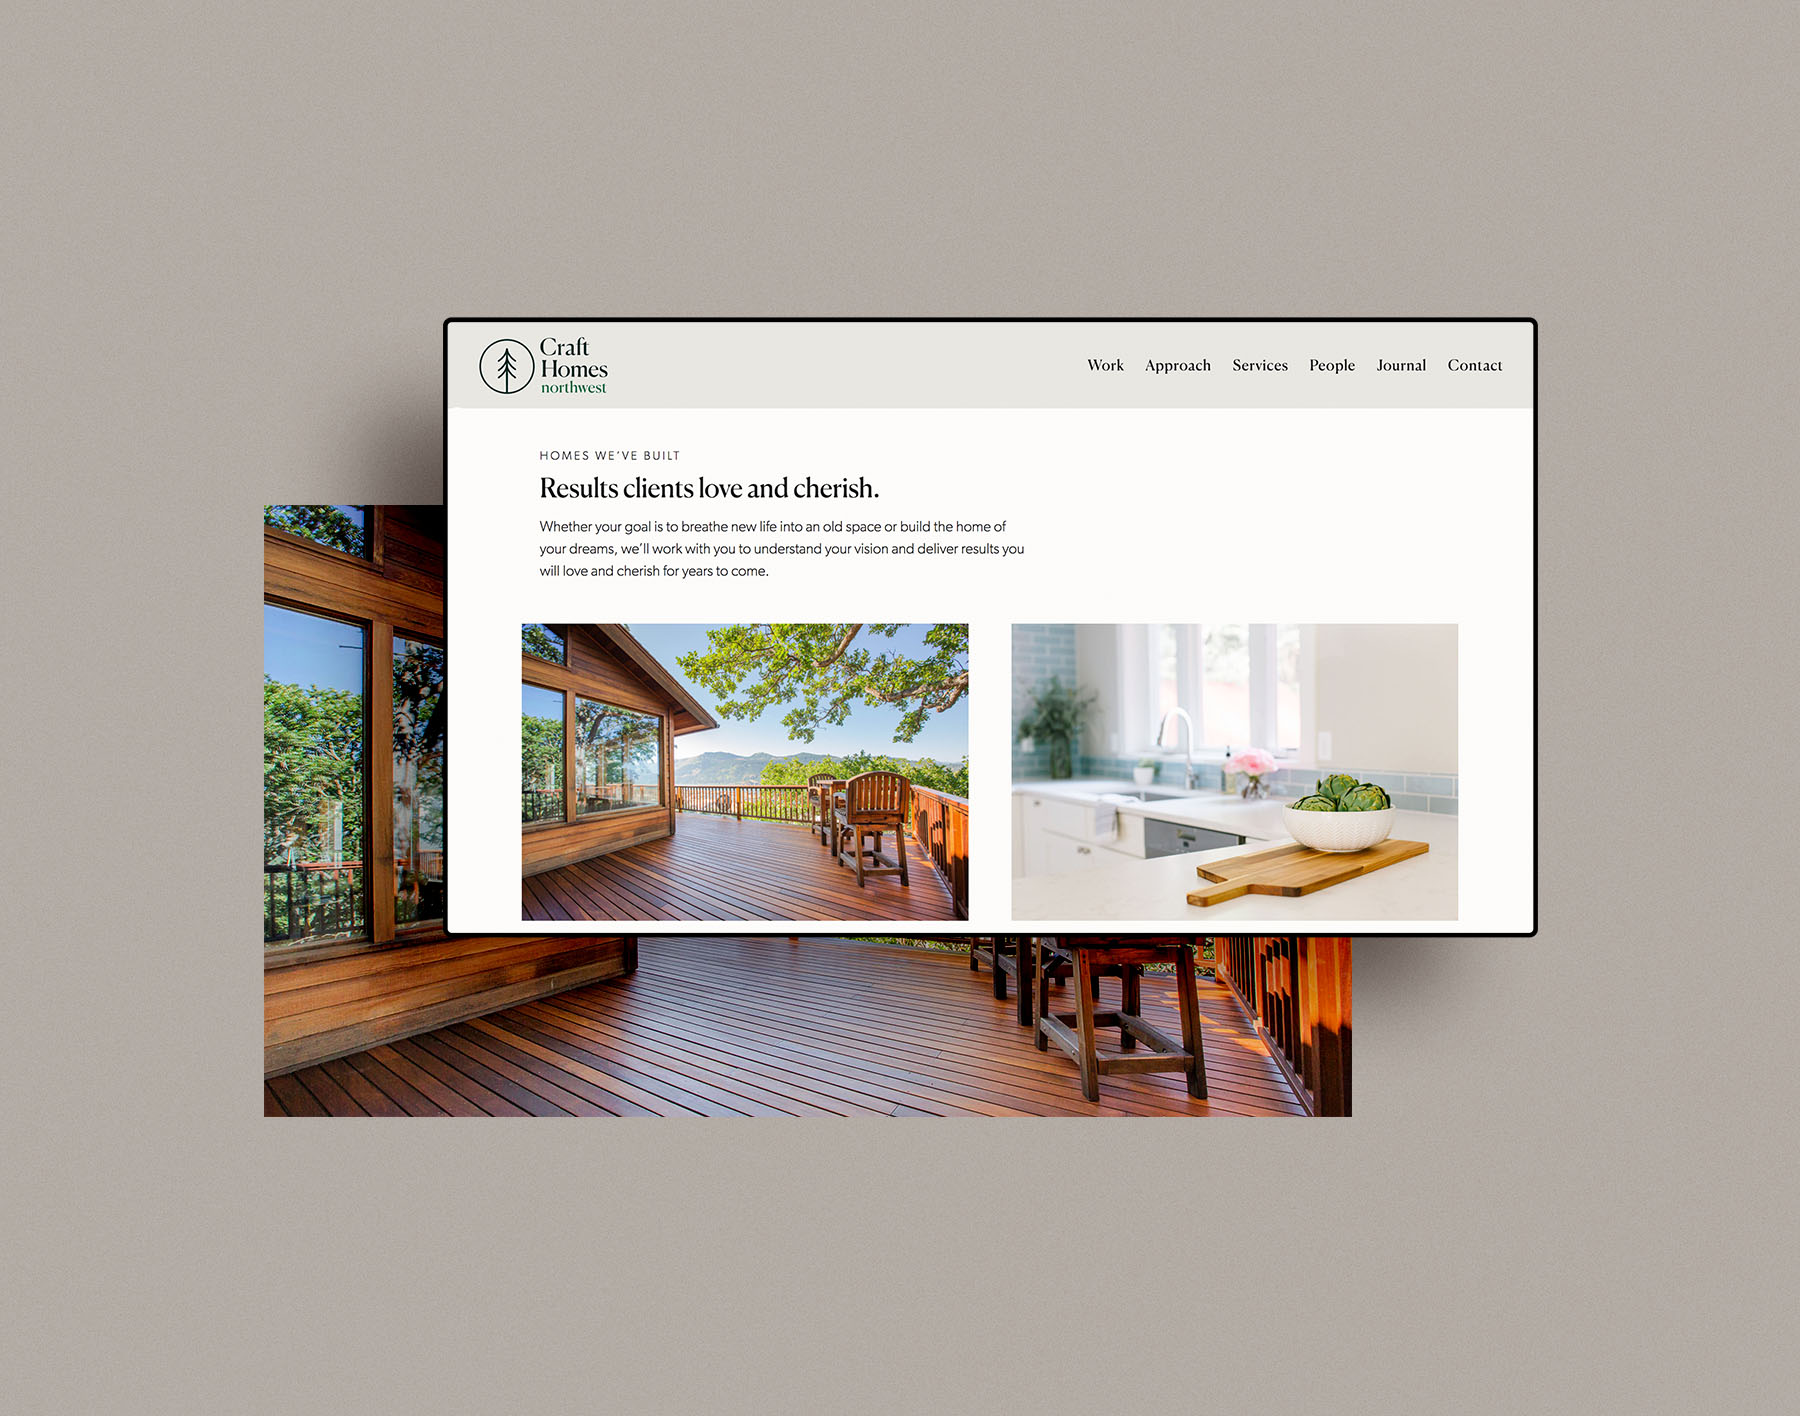 website design for craft homes nw